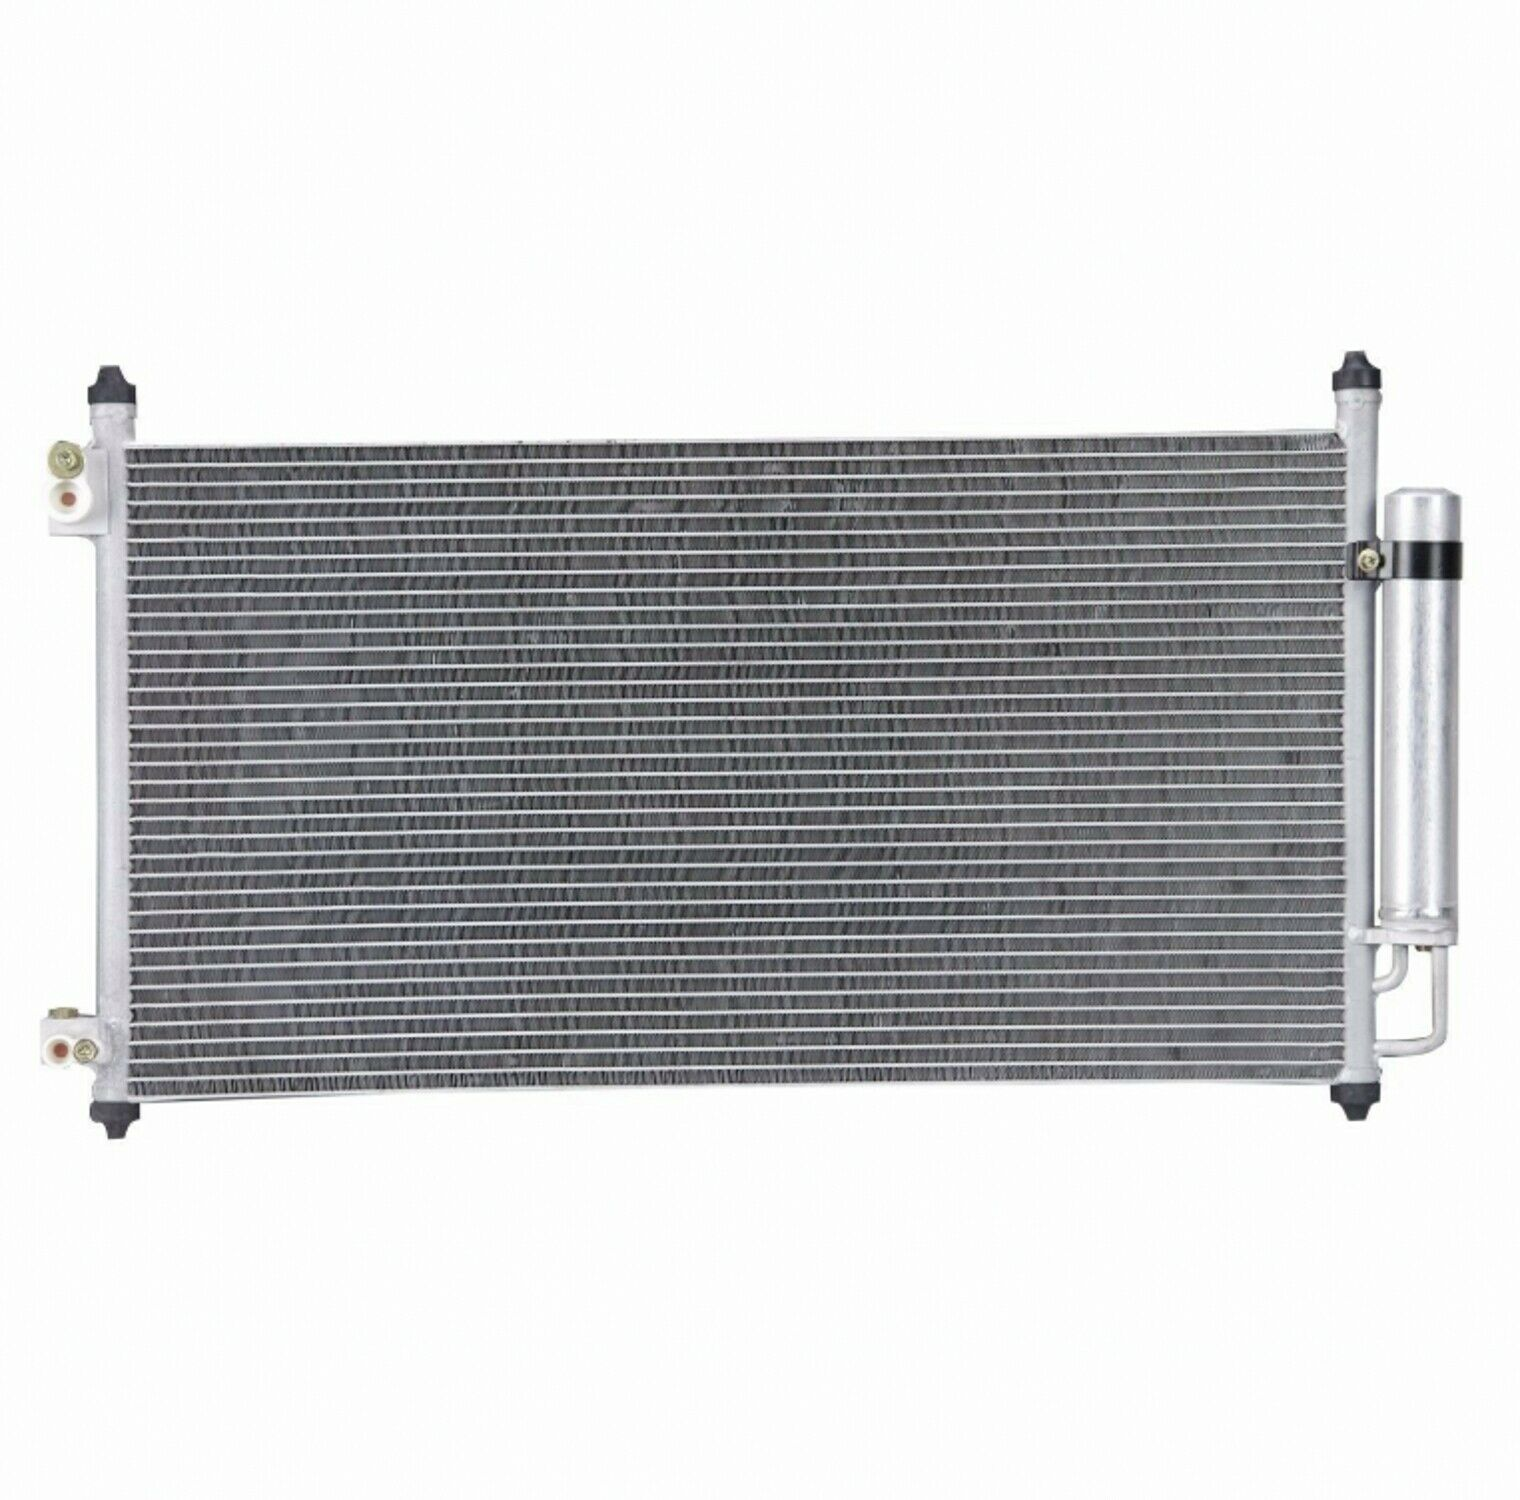 All Aluminum Condenser 1 Row For 200-2008 Acura TL .2L